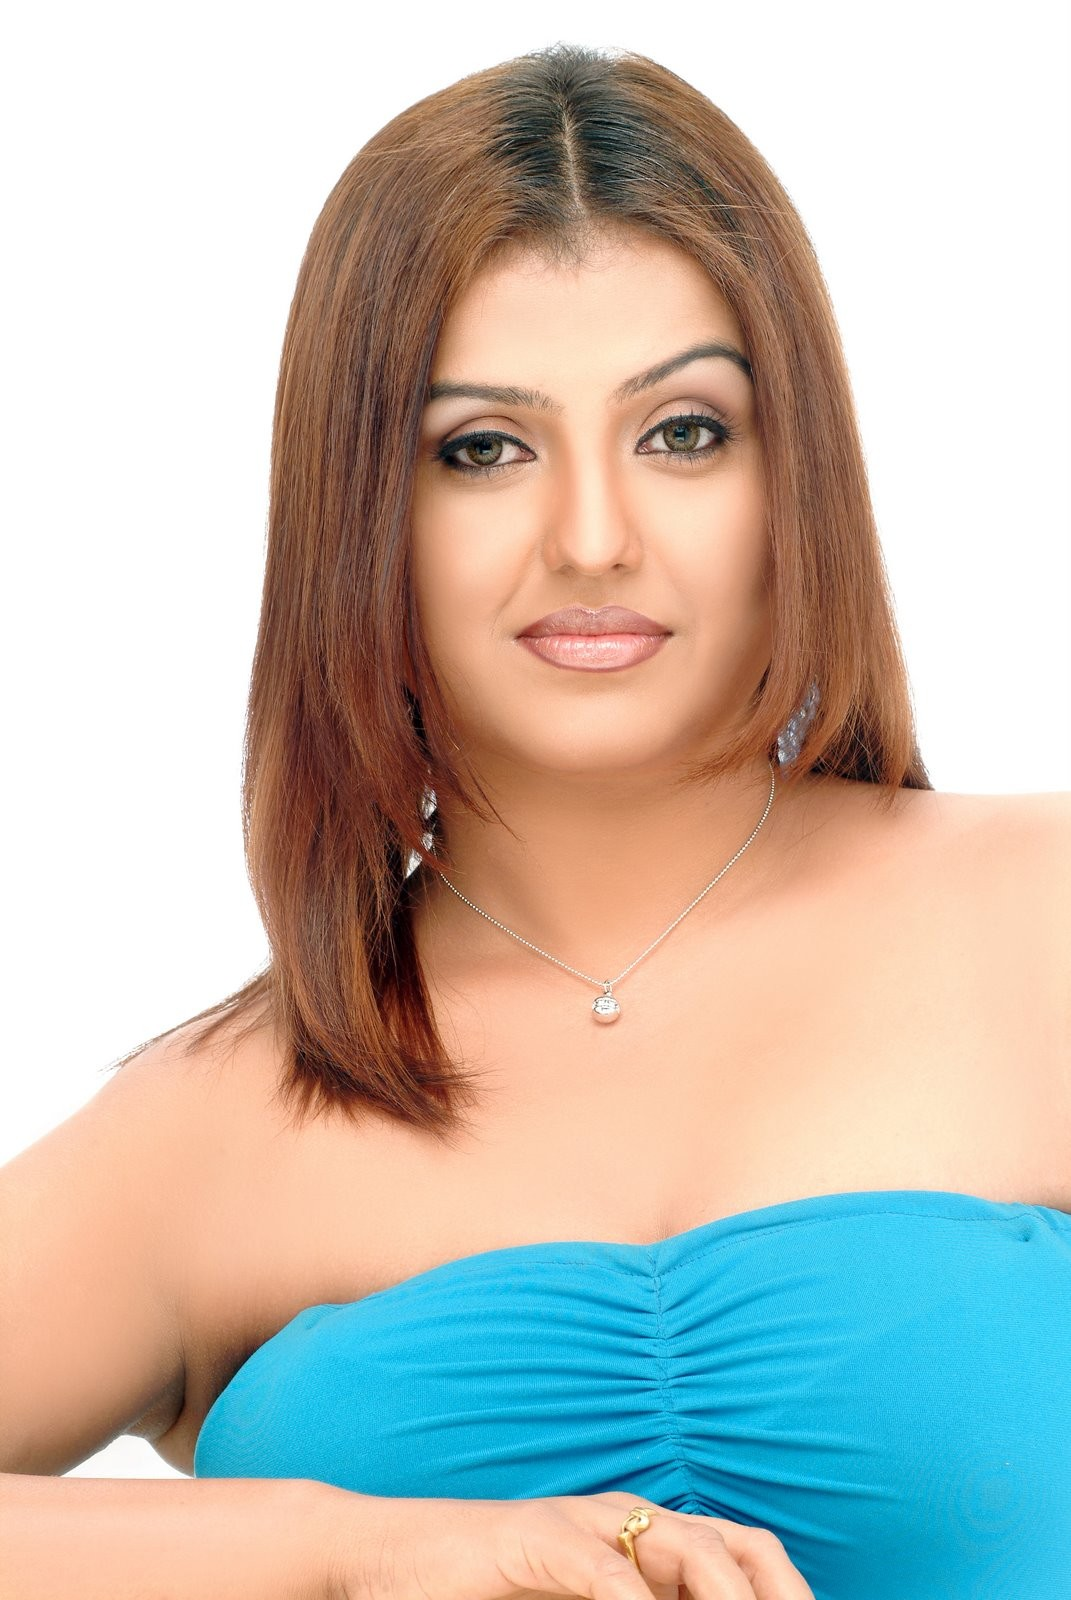 Tamil Masala Pictures Hot | Search Results | Calendar 2015